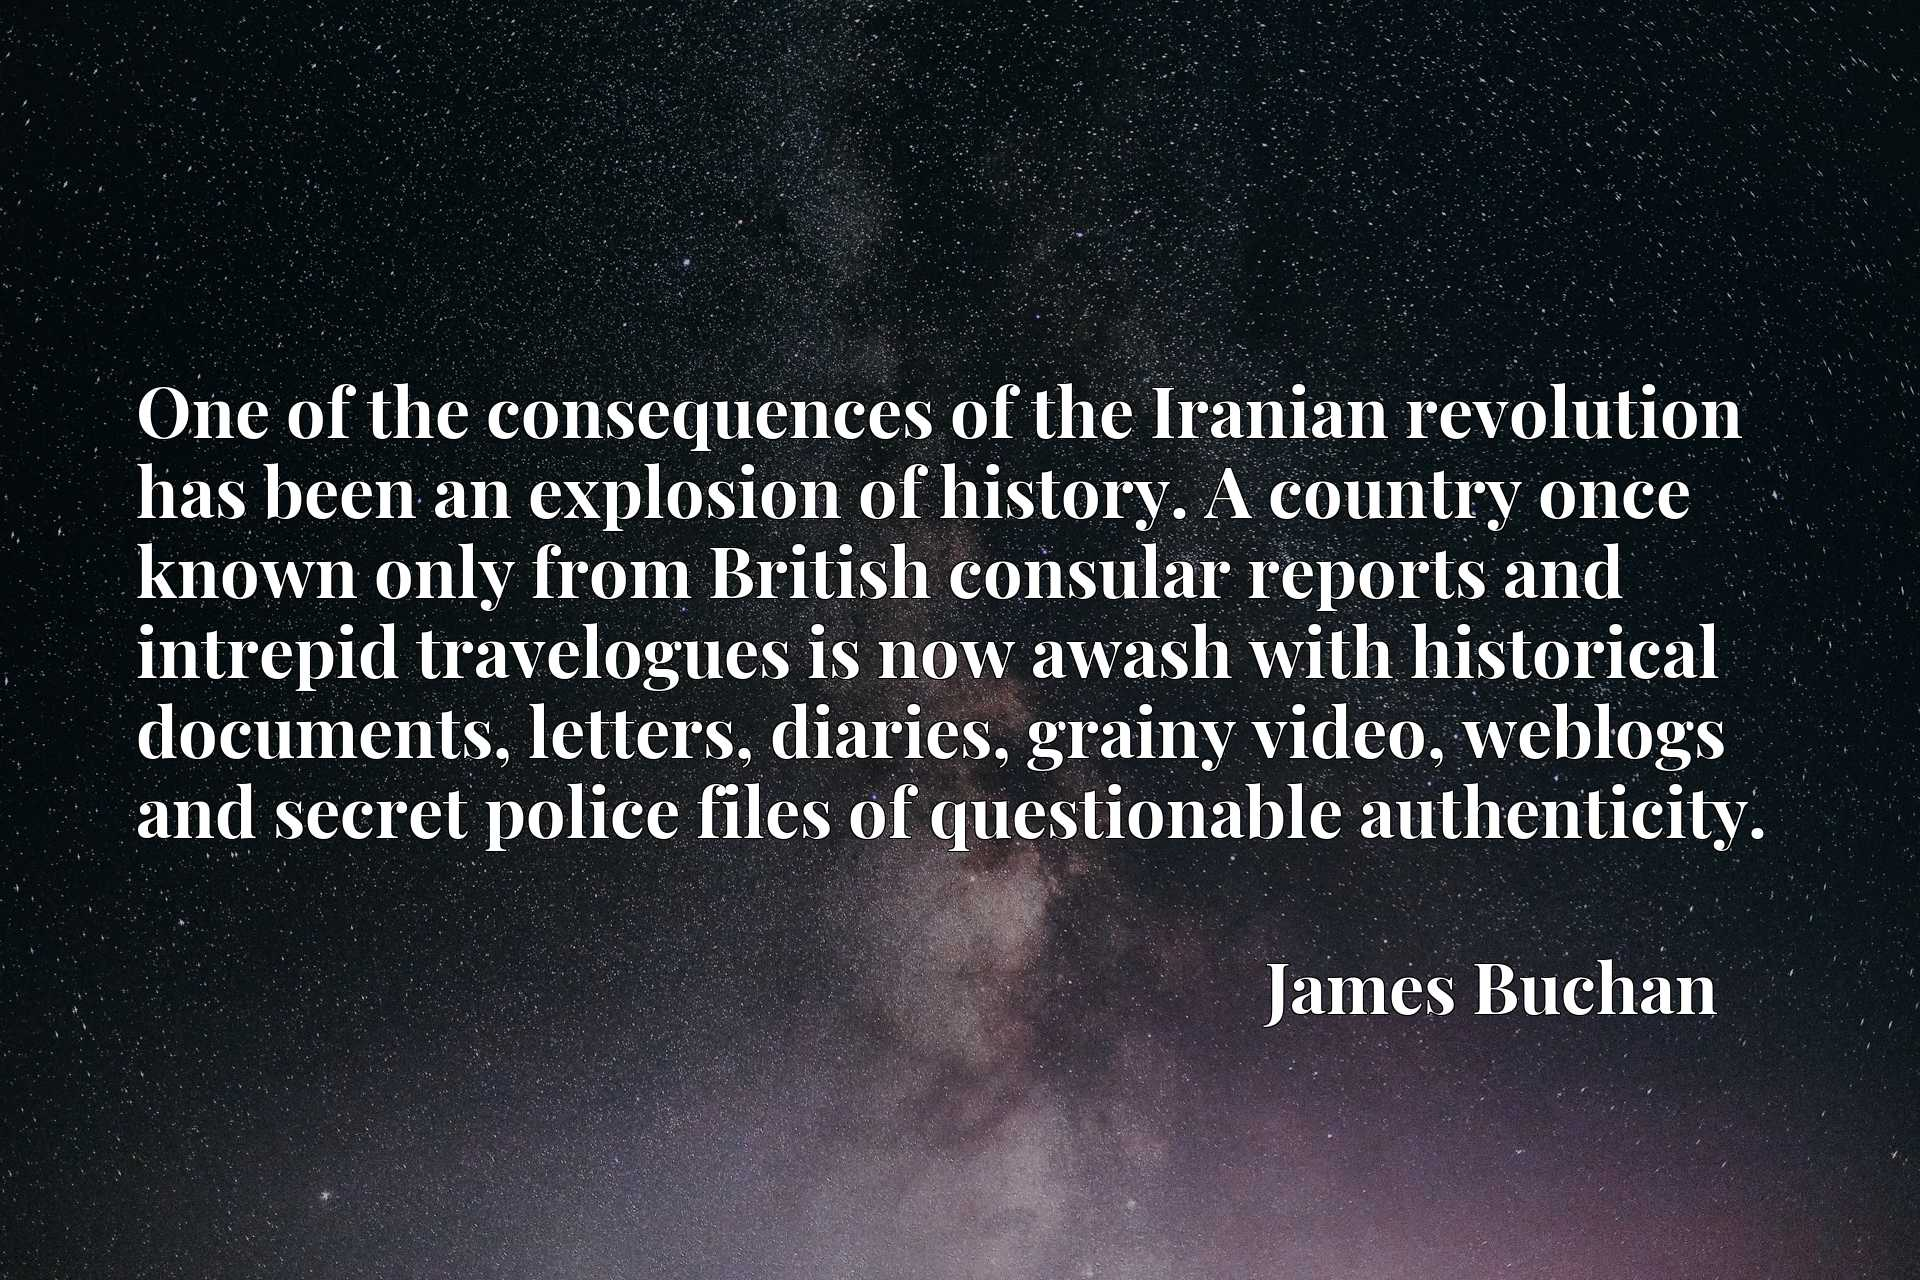 One of the consequences of the Iranian revolution has been an explosion of history. A country once known only from British consular reports and intrepid travelogues is now awash with historical documents, letters, diaries, grainy video, weblogs and secret police files of questionable authenticity.